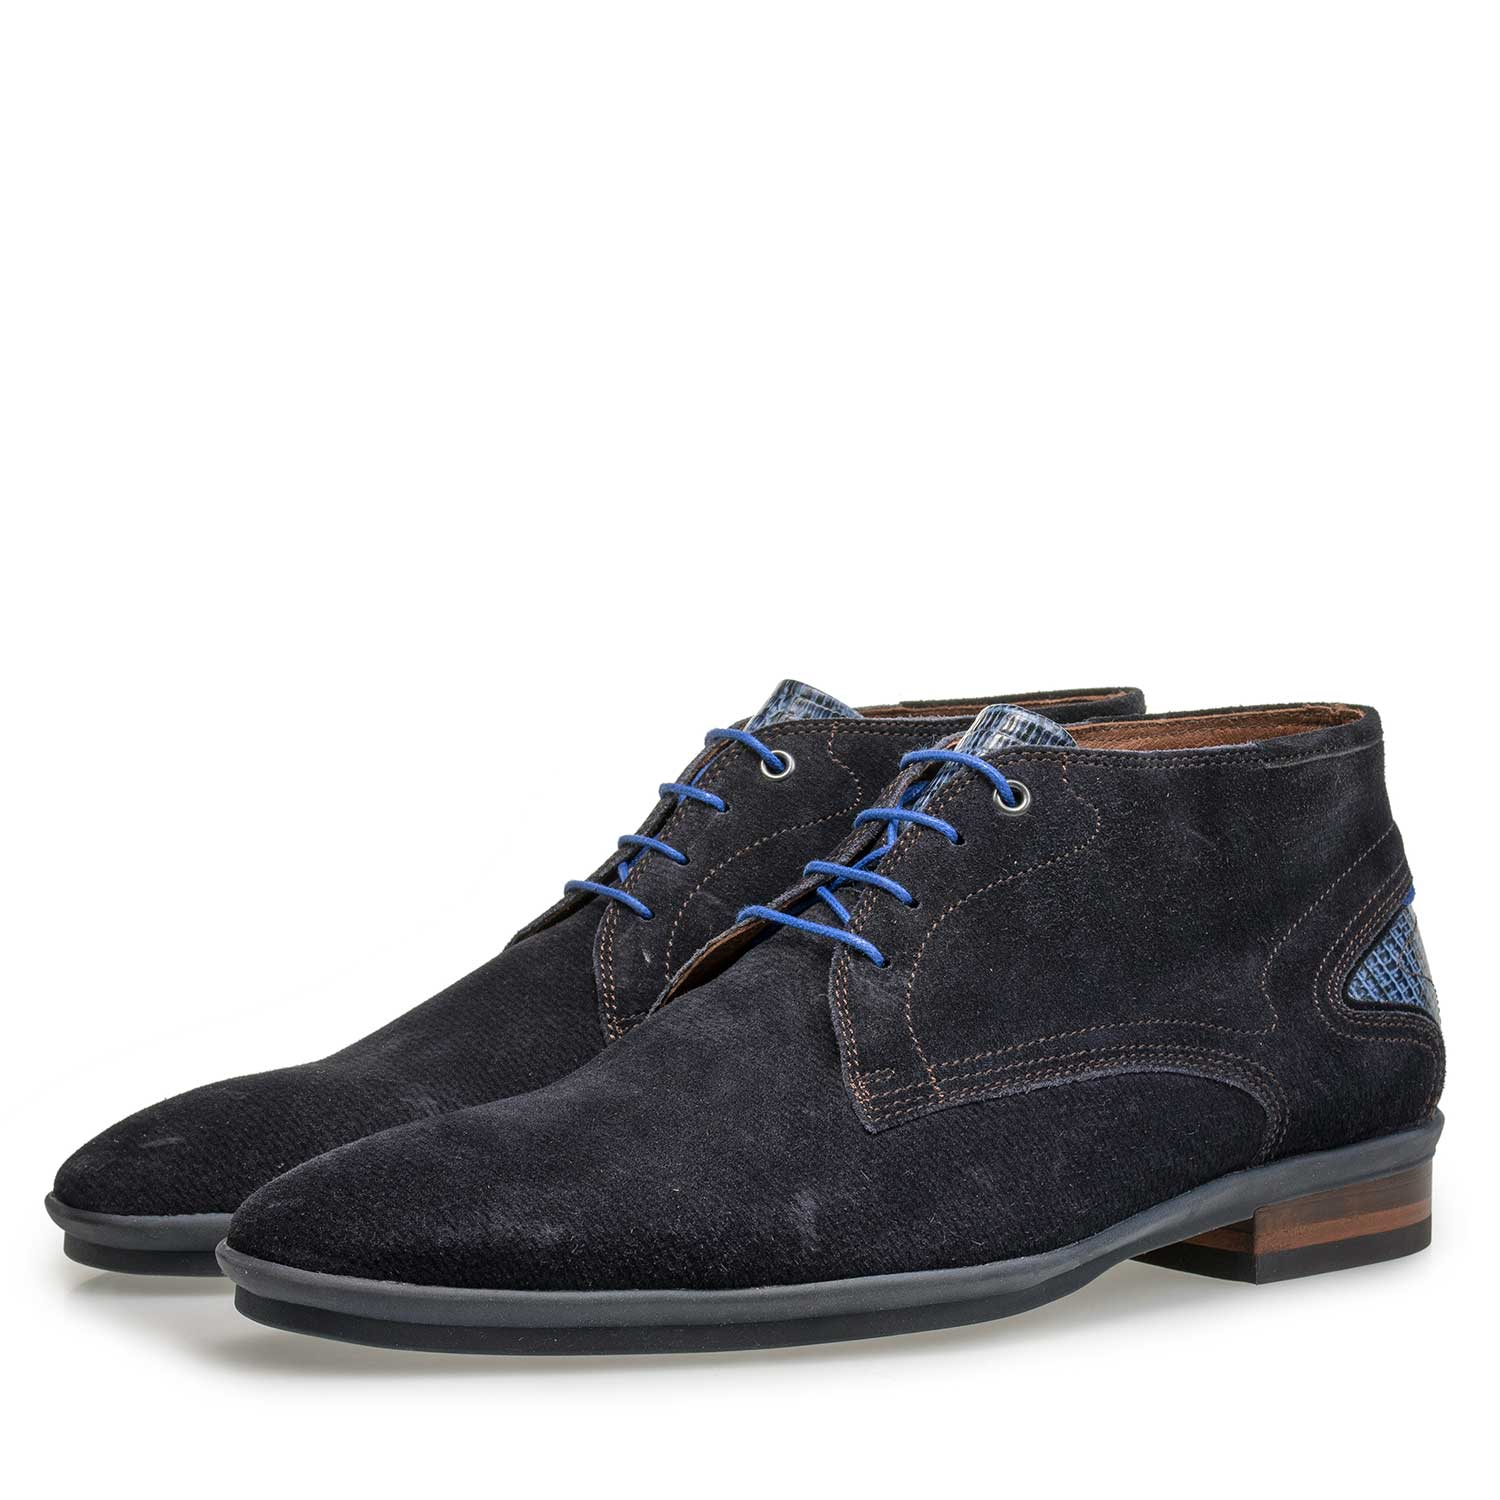 10131/07 - Blue patterned calf suede leather lace boot